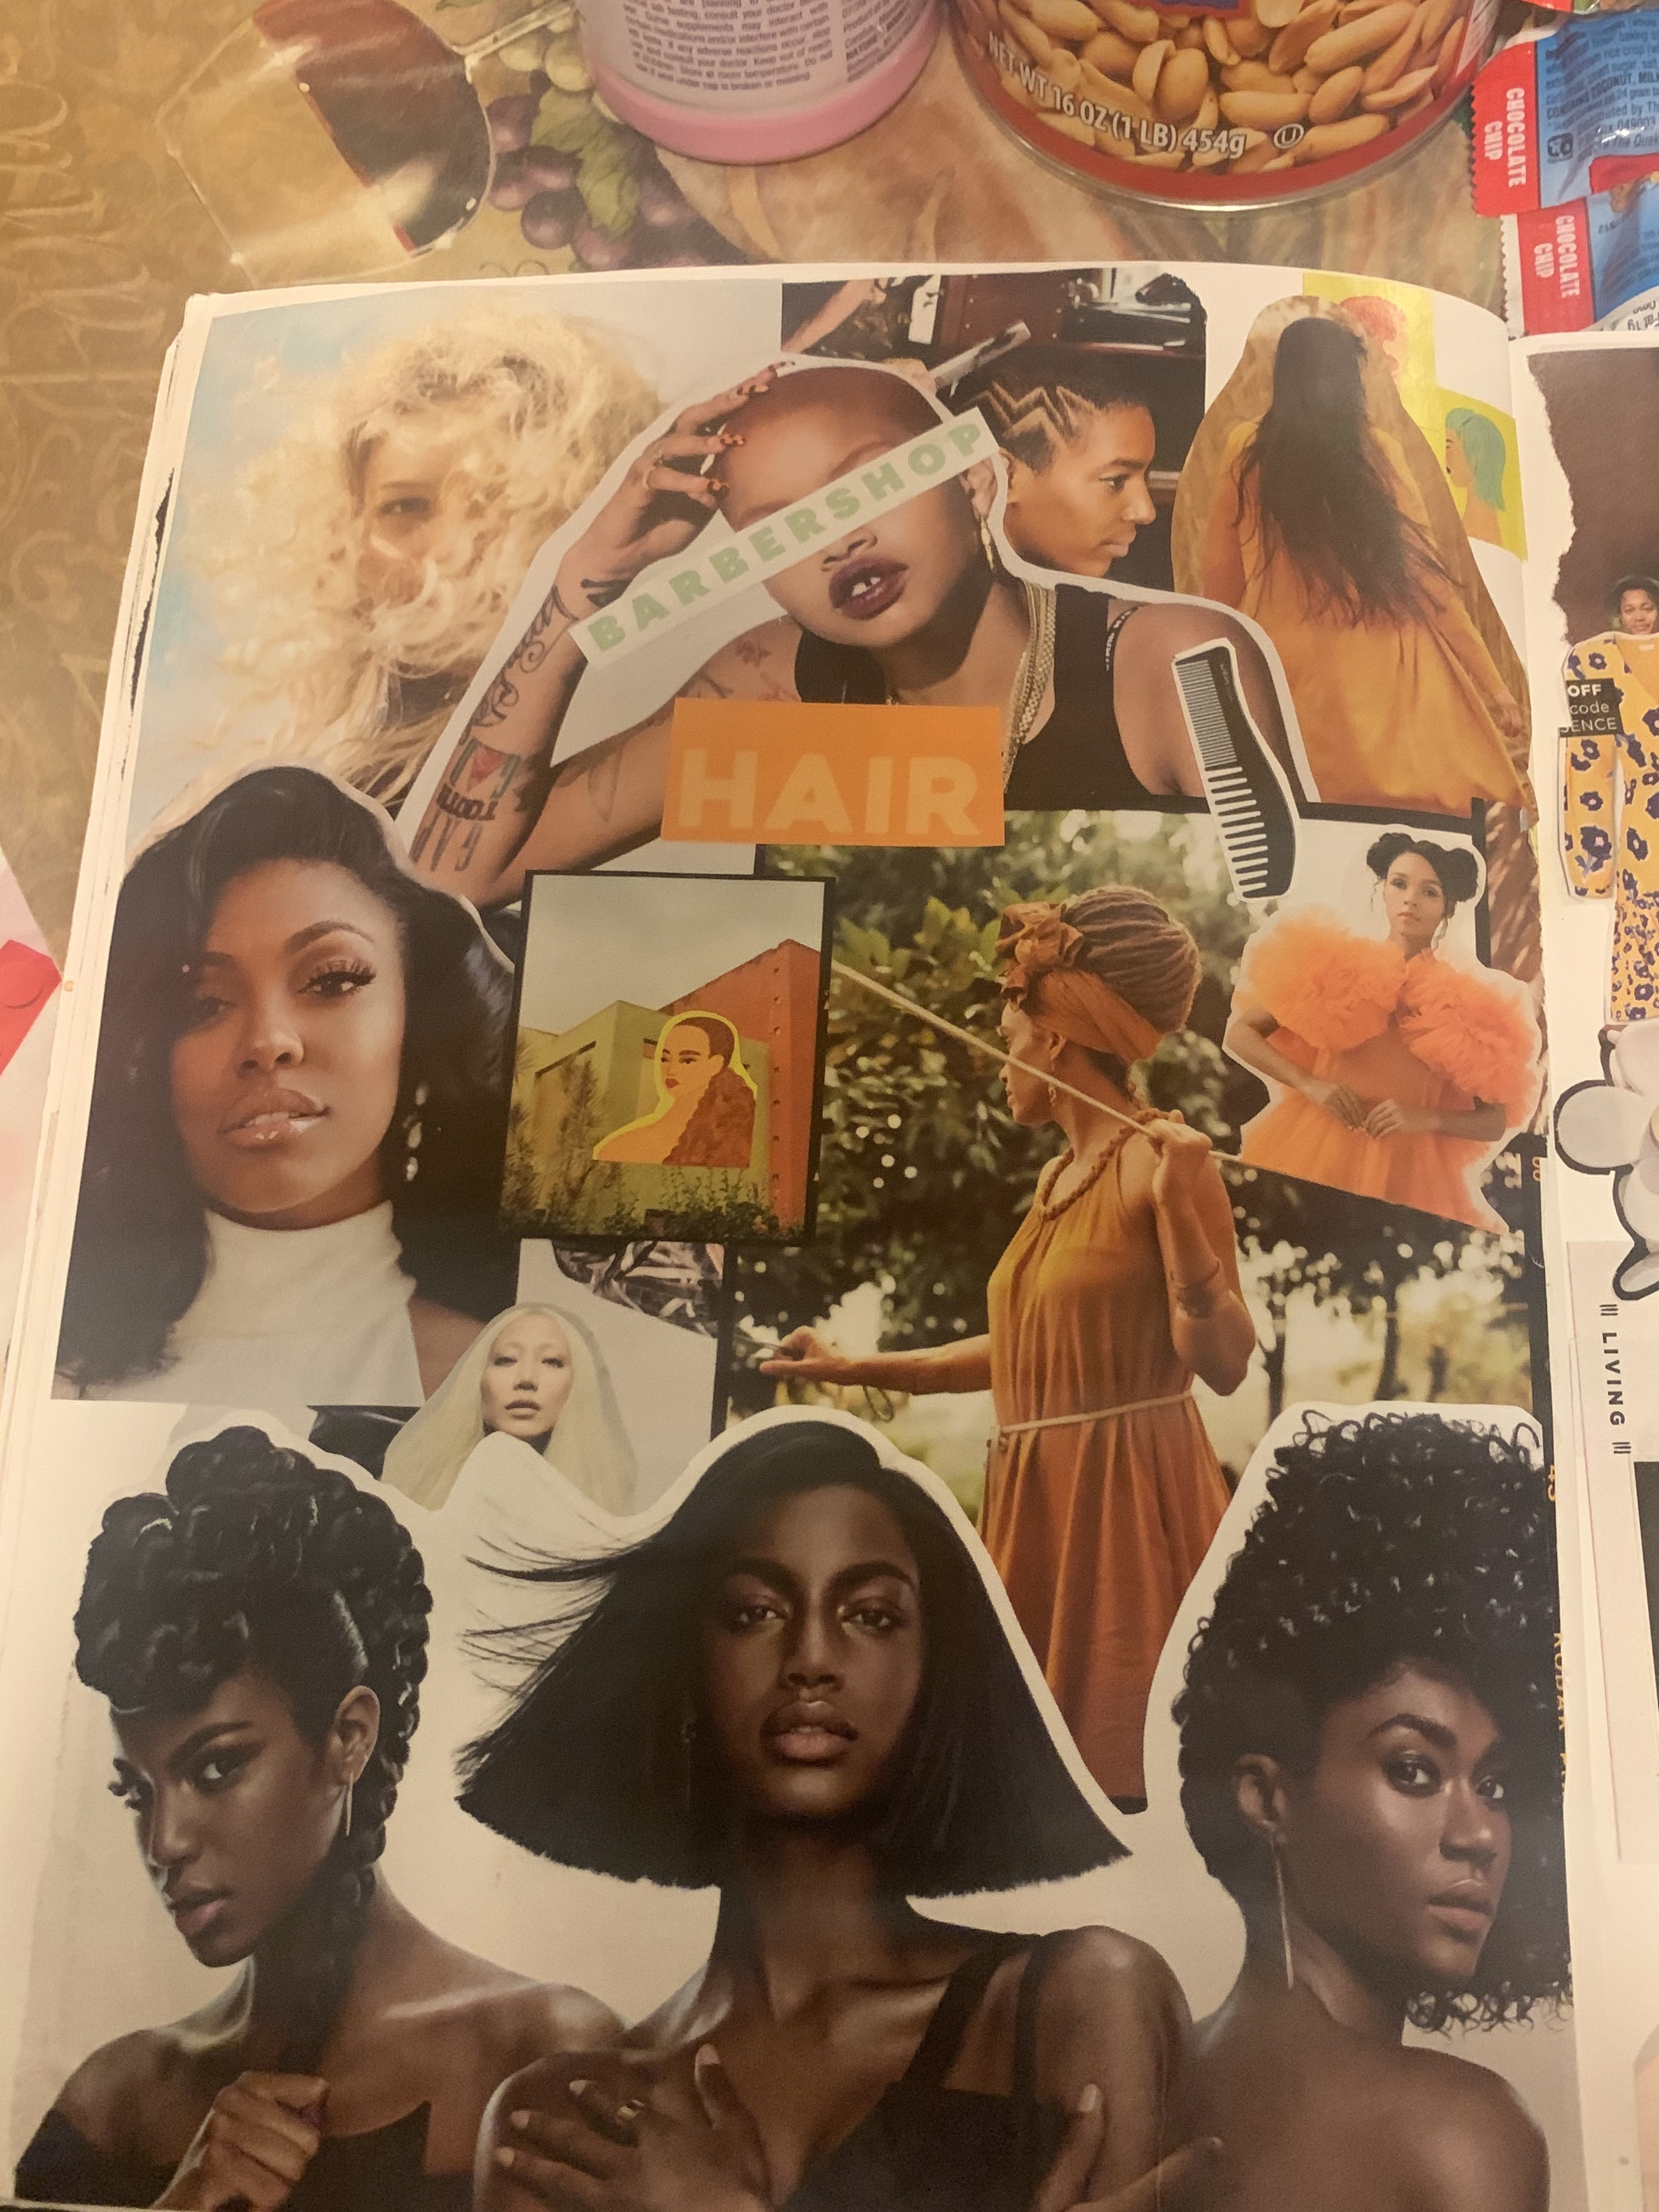 Hair and Natural Hair Themed Collage Art